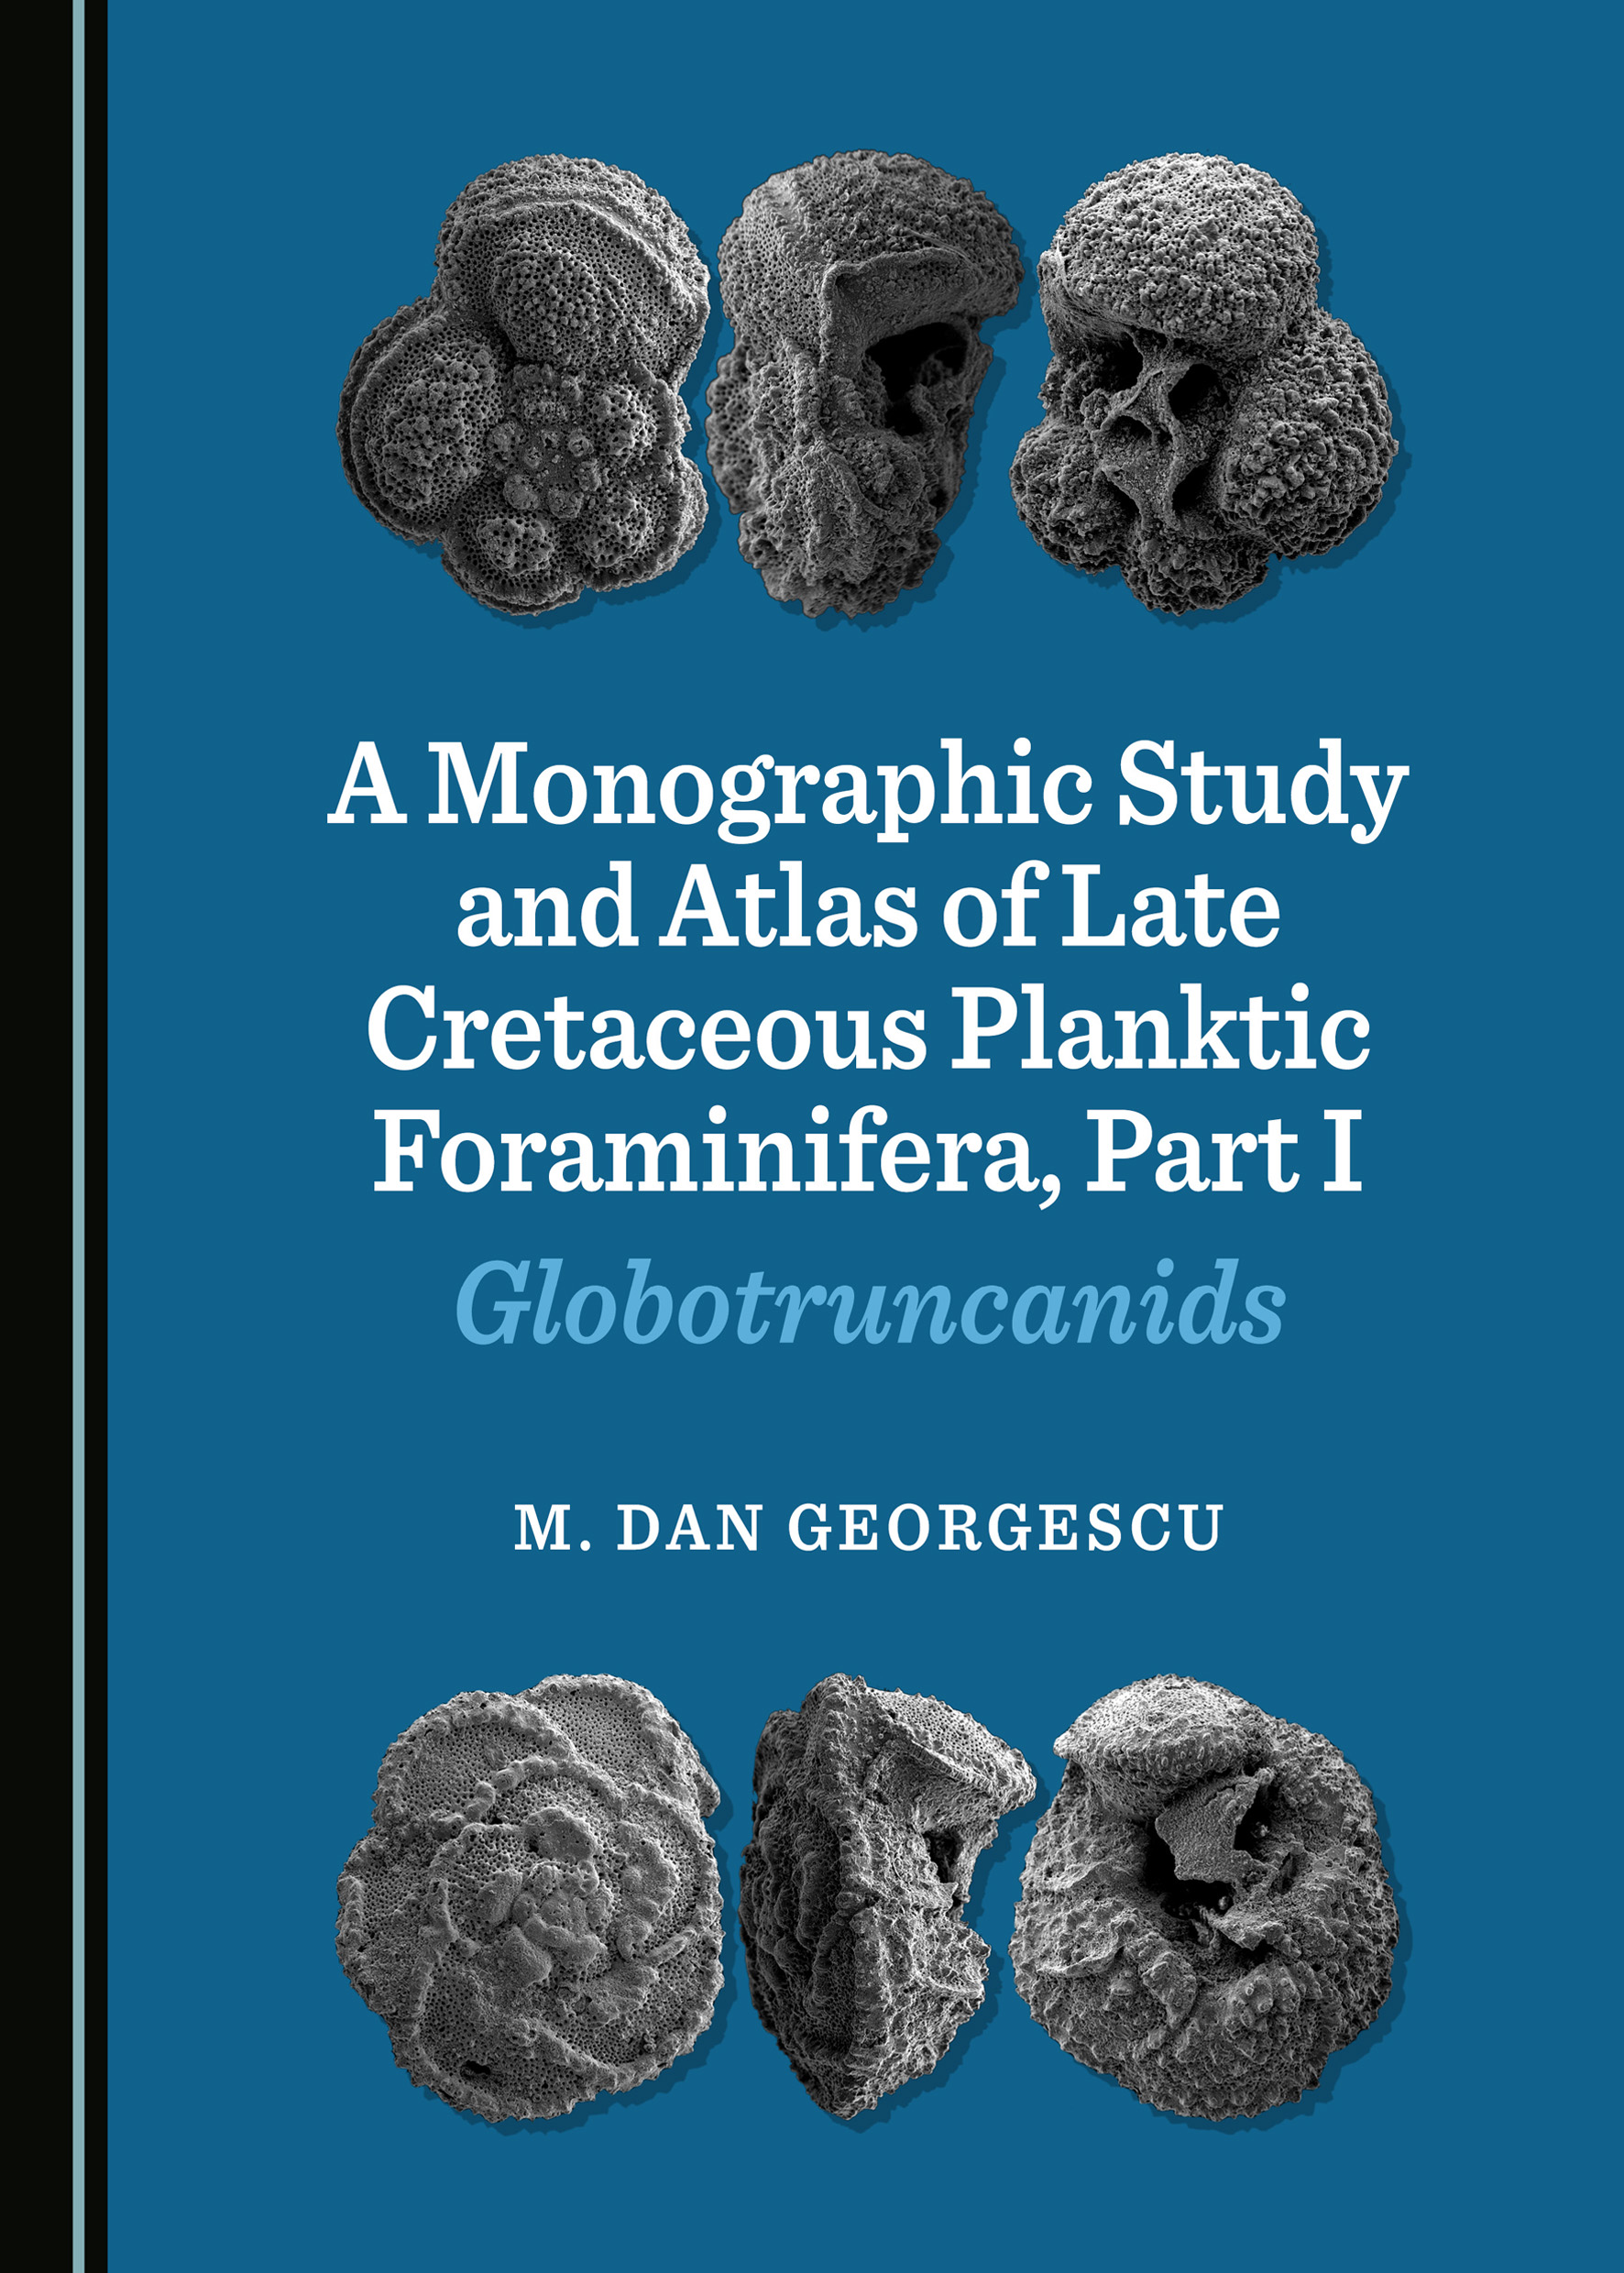 A Monographic Study and Atlas of Late Cretaceous Planktic Foraminifera, Part I: Globotruncanids